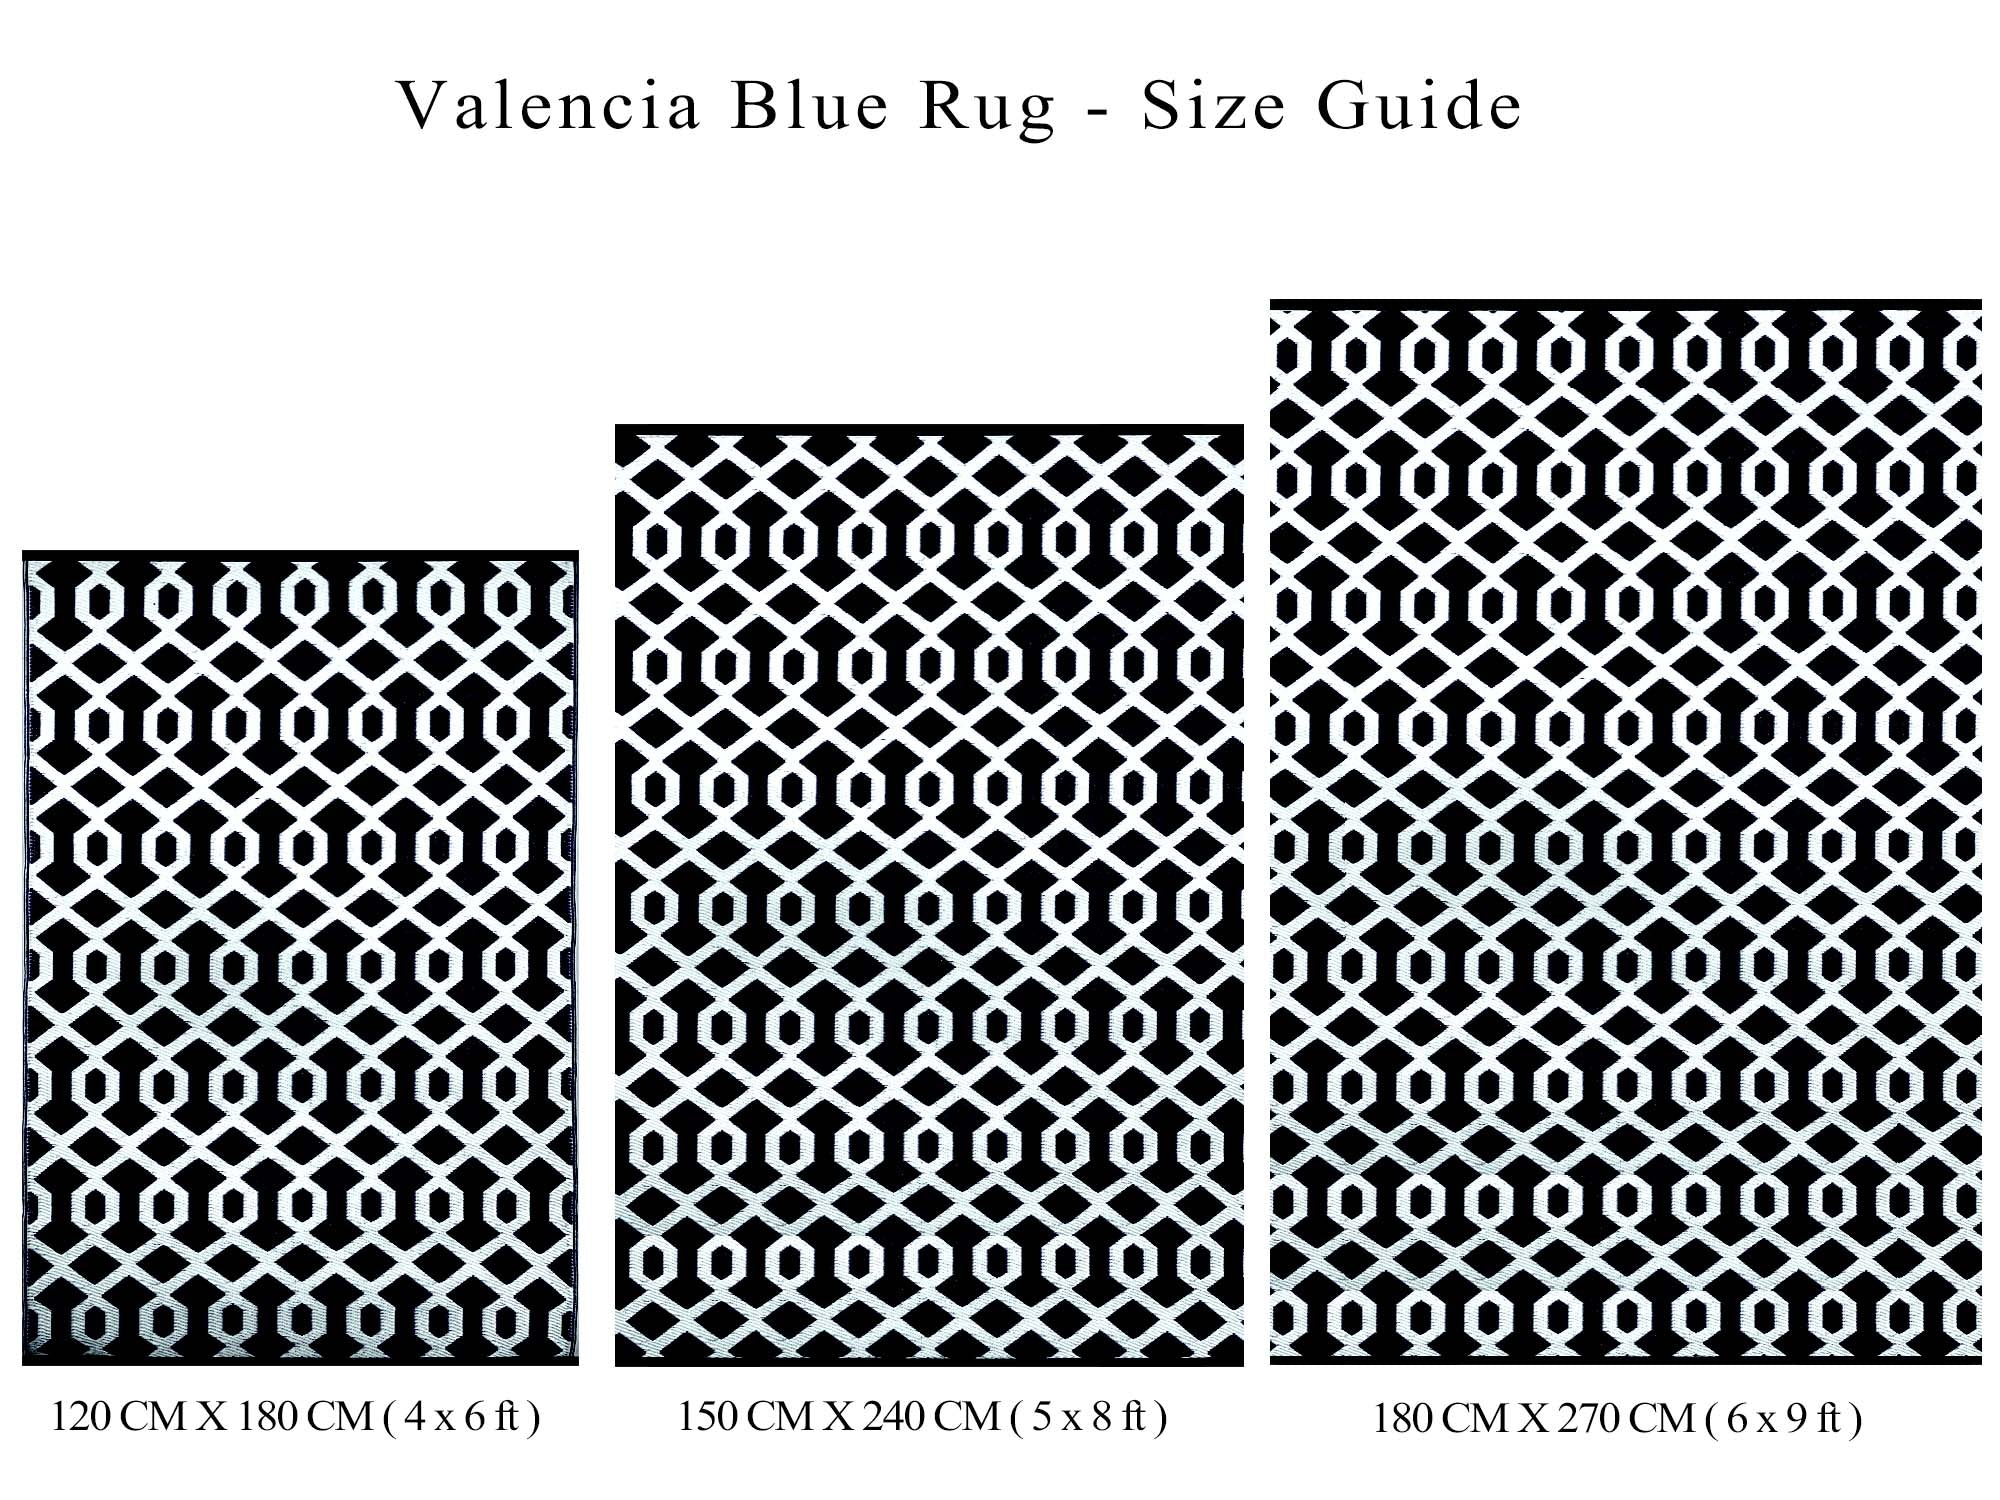 VALENCIA Outdoor Recycled Plastic Rug (Black/White)